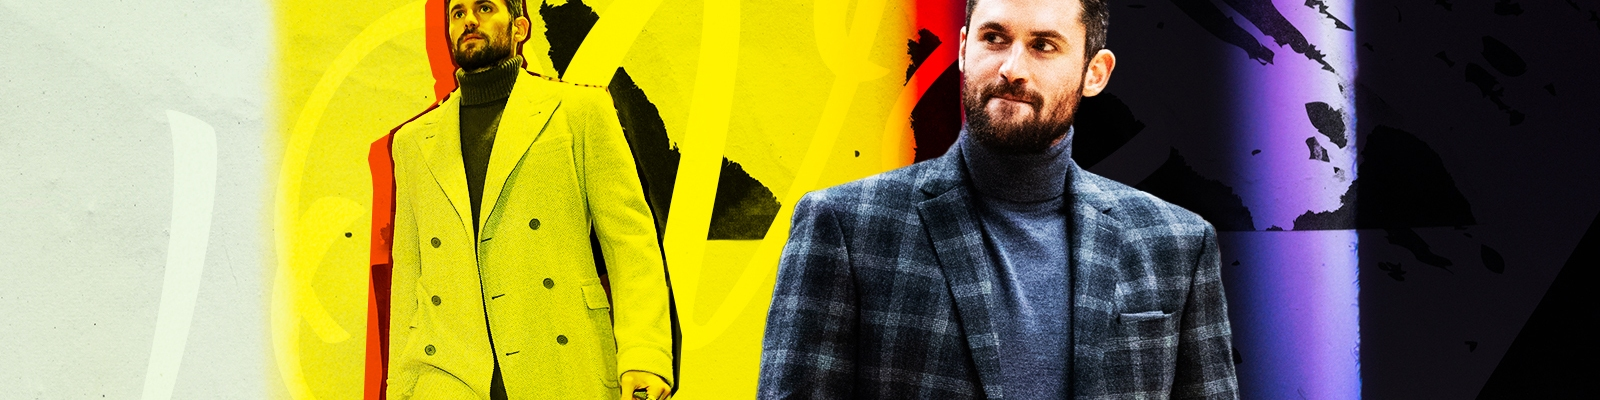 NBA Stylist Courtney Mays Explains Why Kevin Love Is 'The Ultimate Renaissance Man'